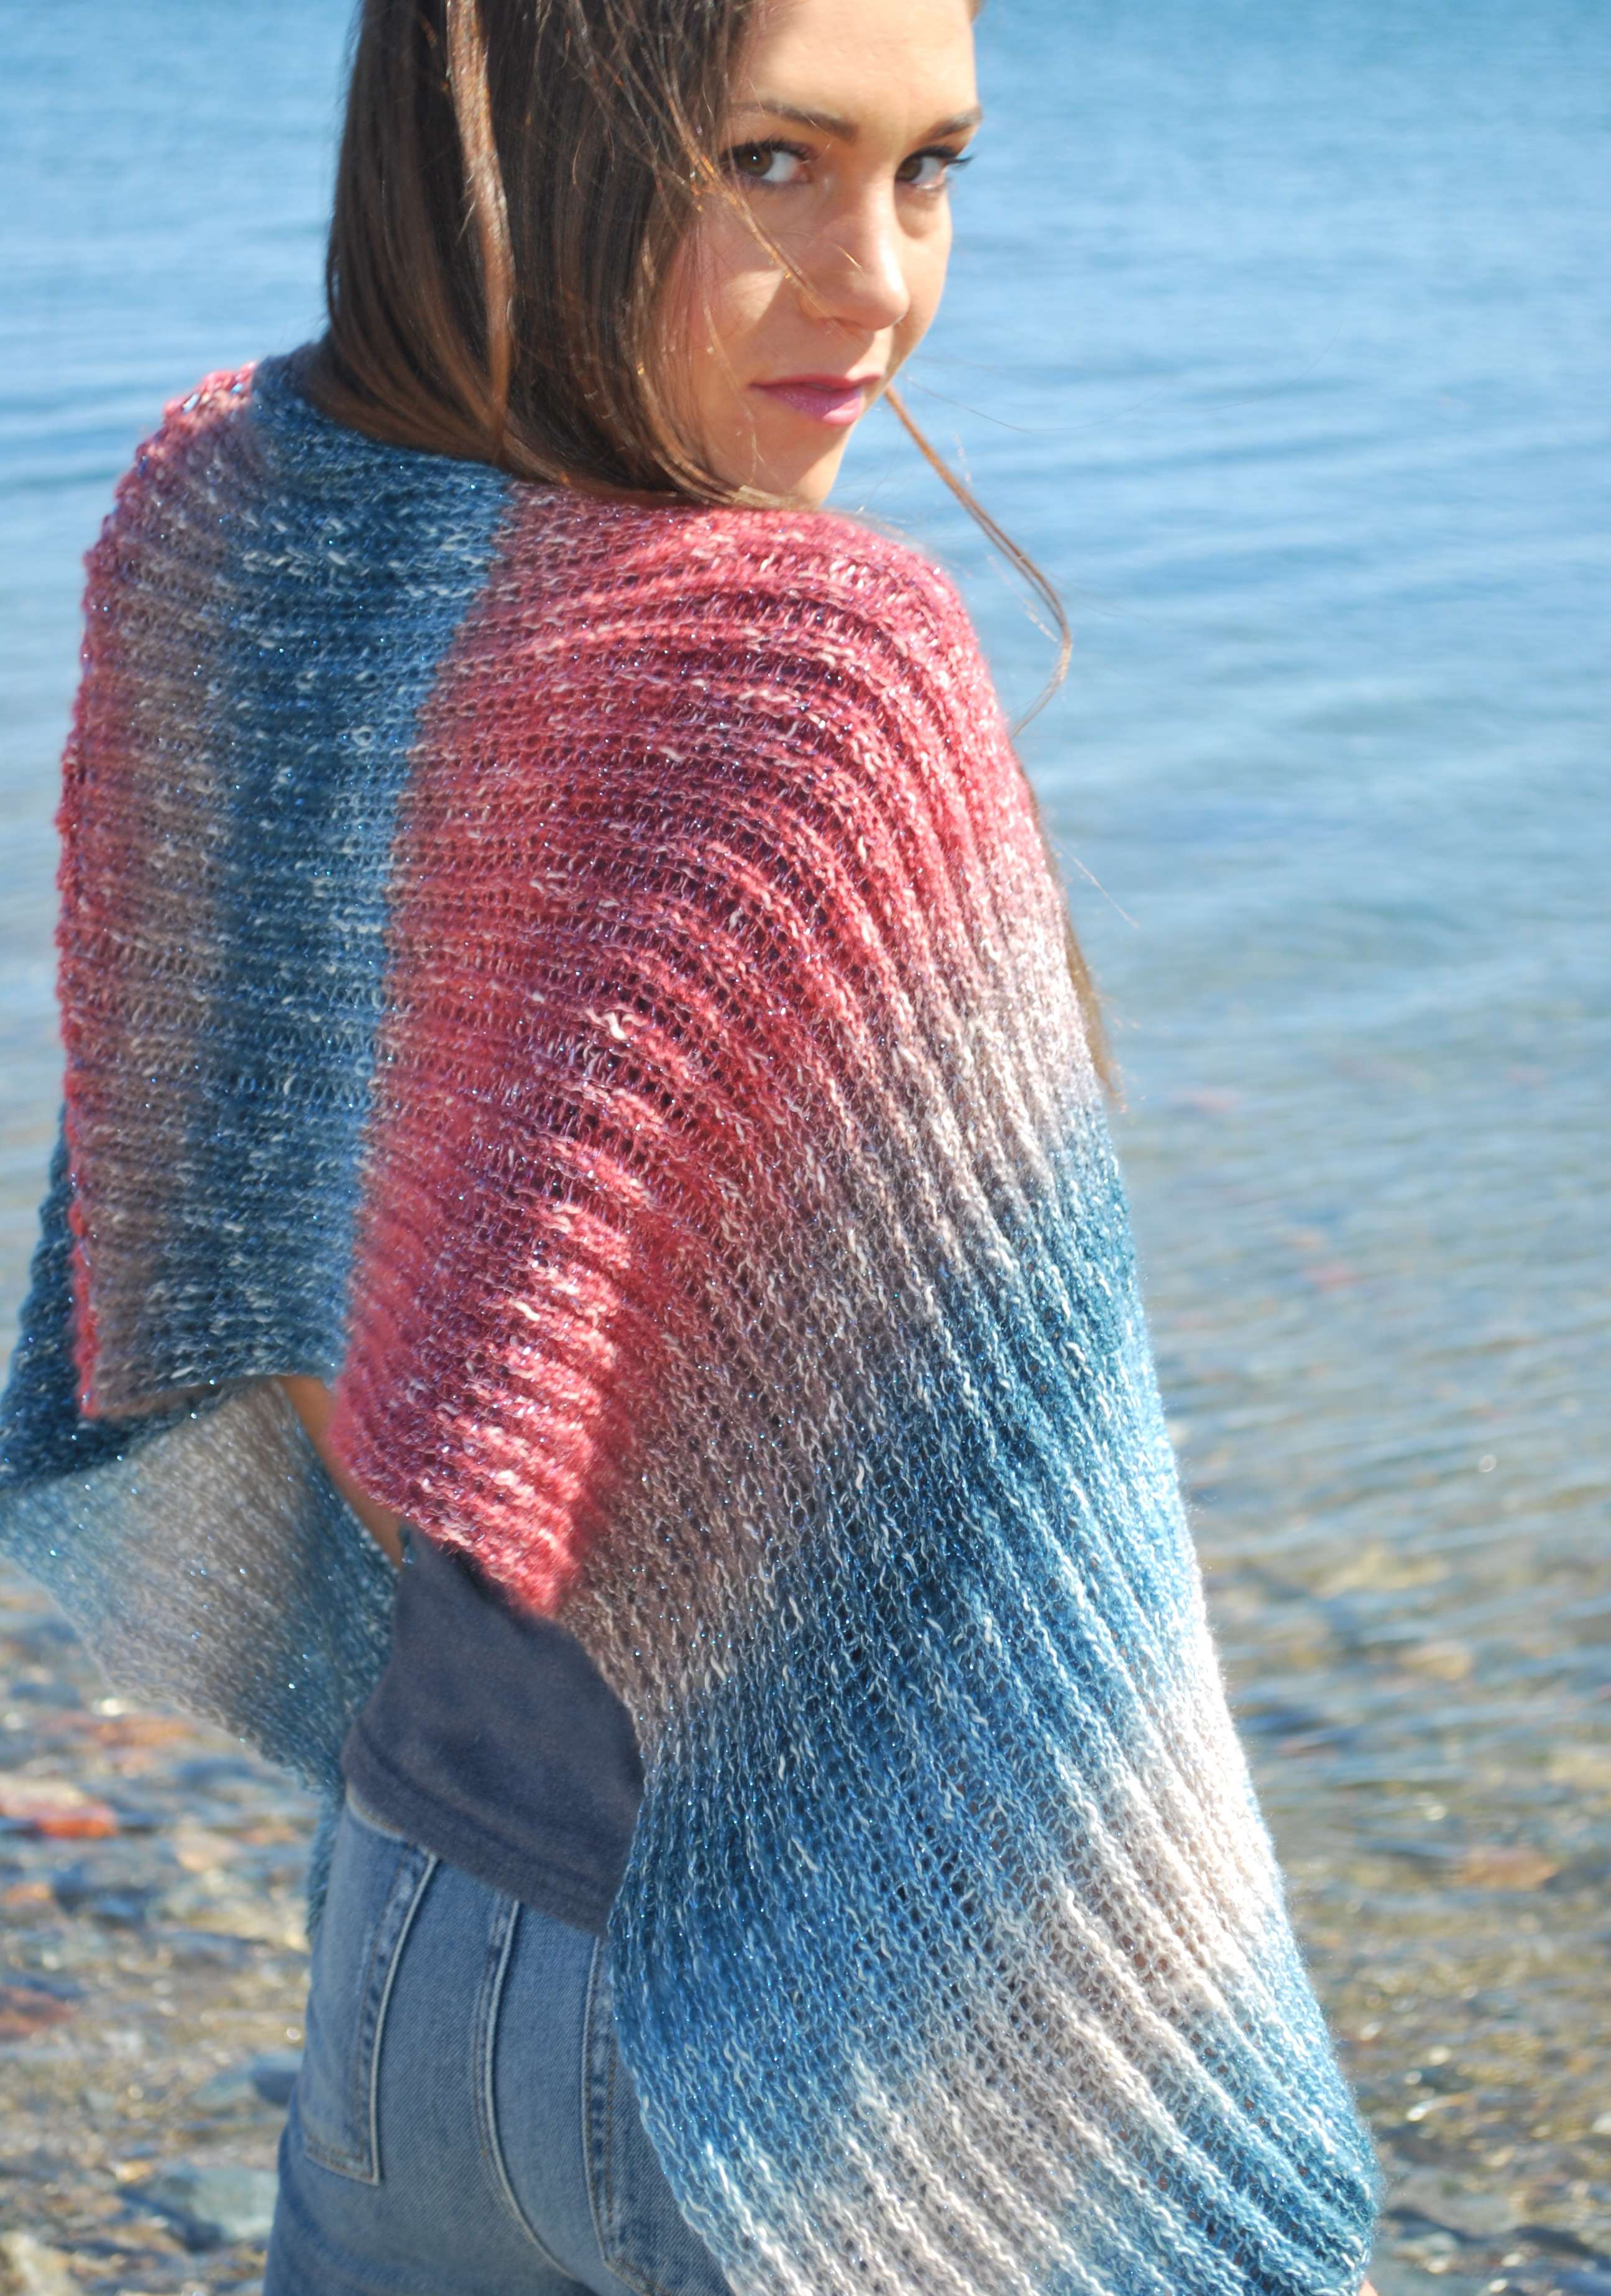 00c0ae1af A very simple pattern with continuous rib stitch throughout. Knit in double  knit with 60 double pegs. Shawl is made light and airy with the Shawl in a  Cake ...